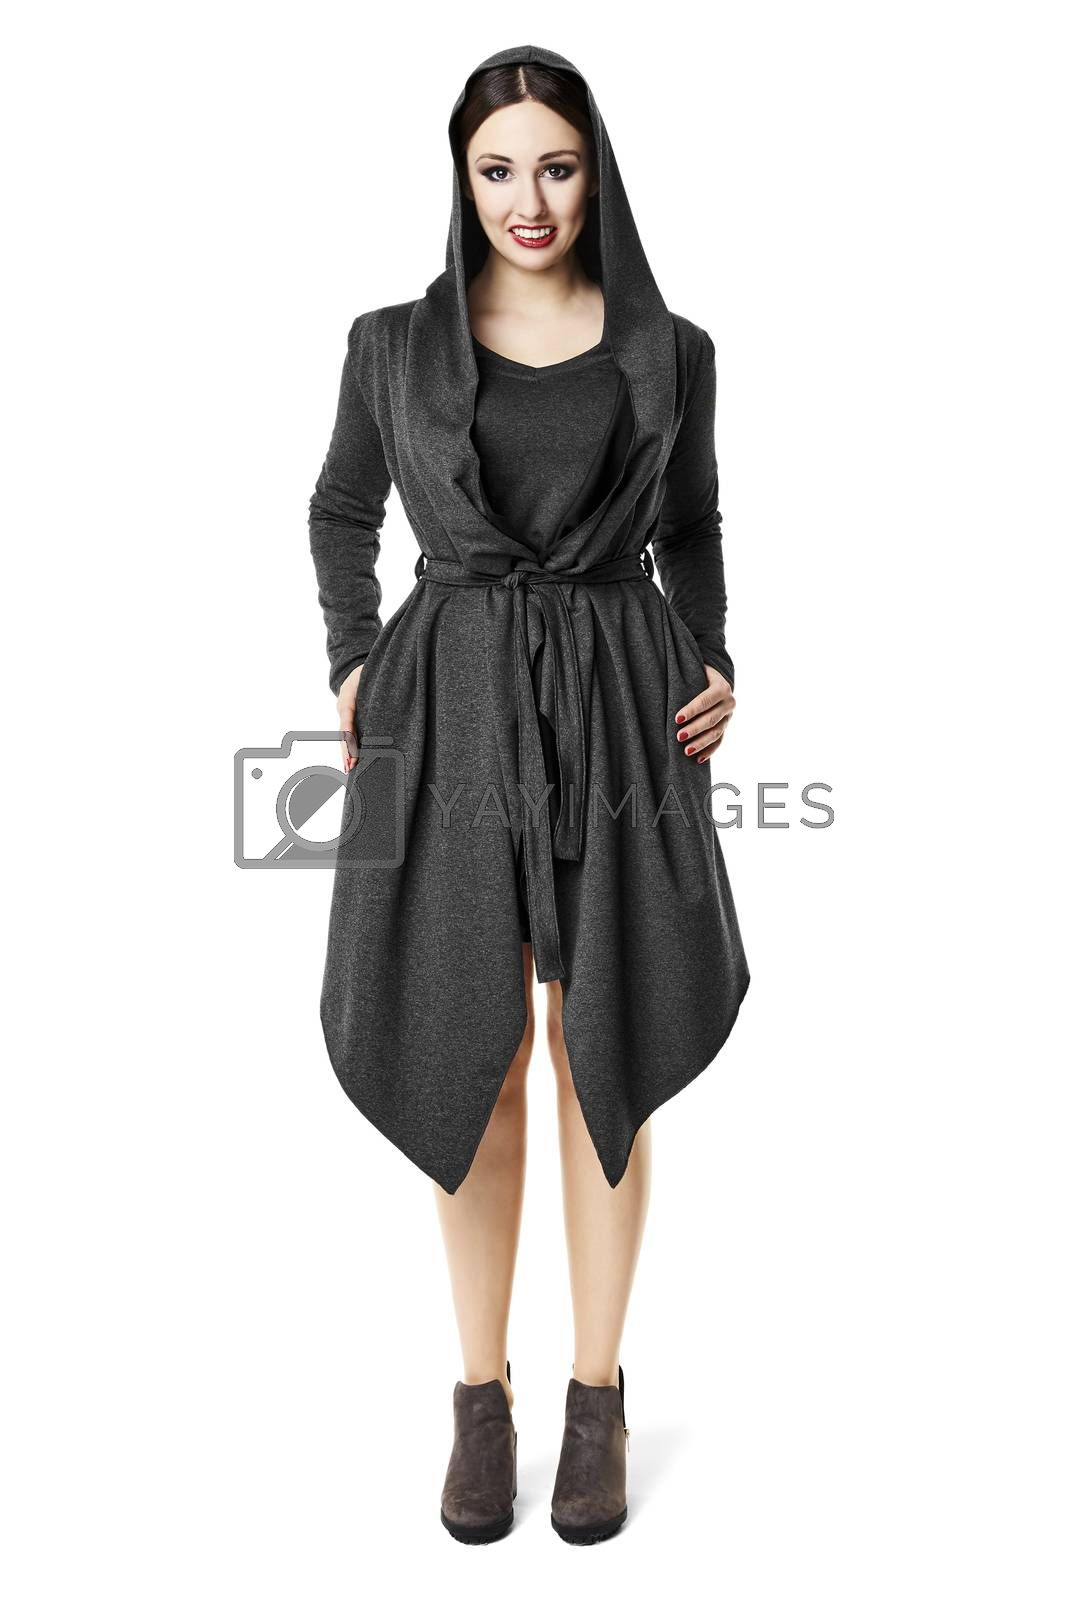 Studio shot of woman in black coat. Isolated on white background.